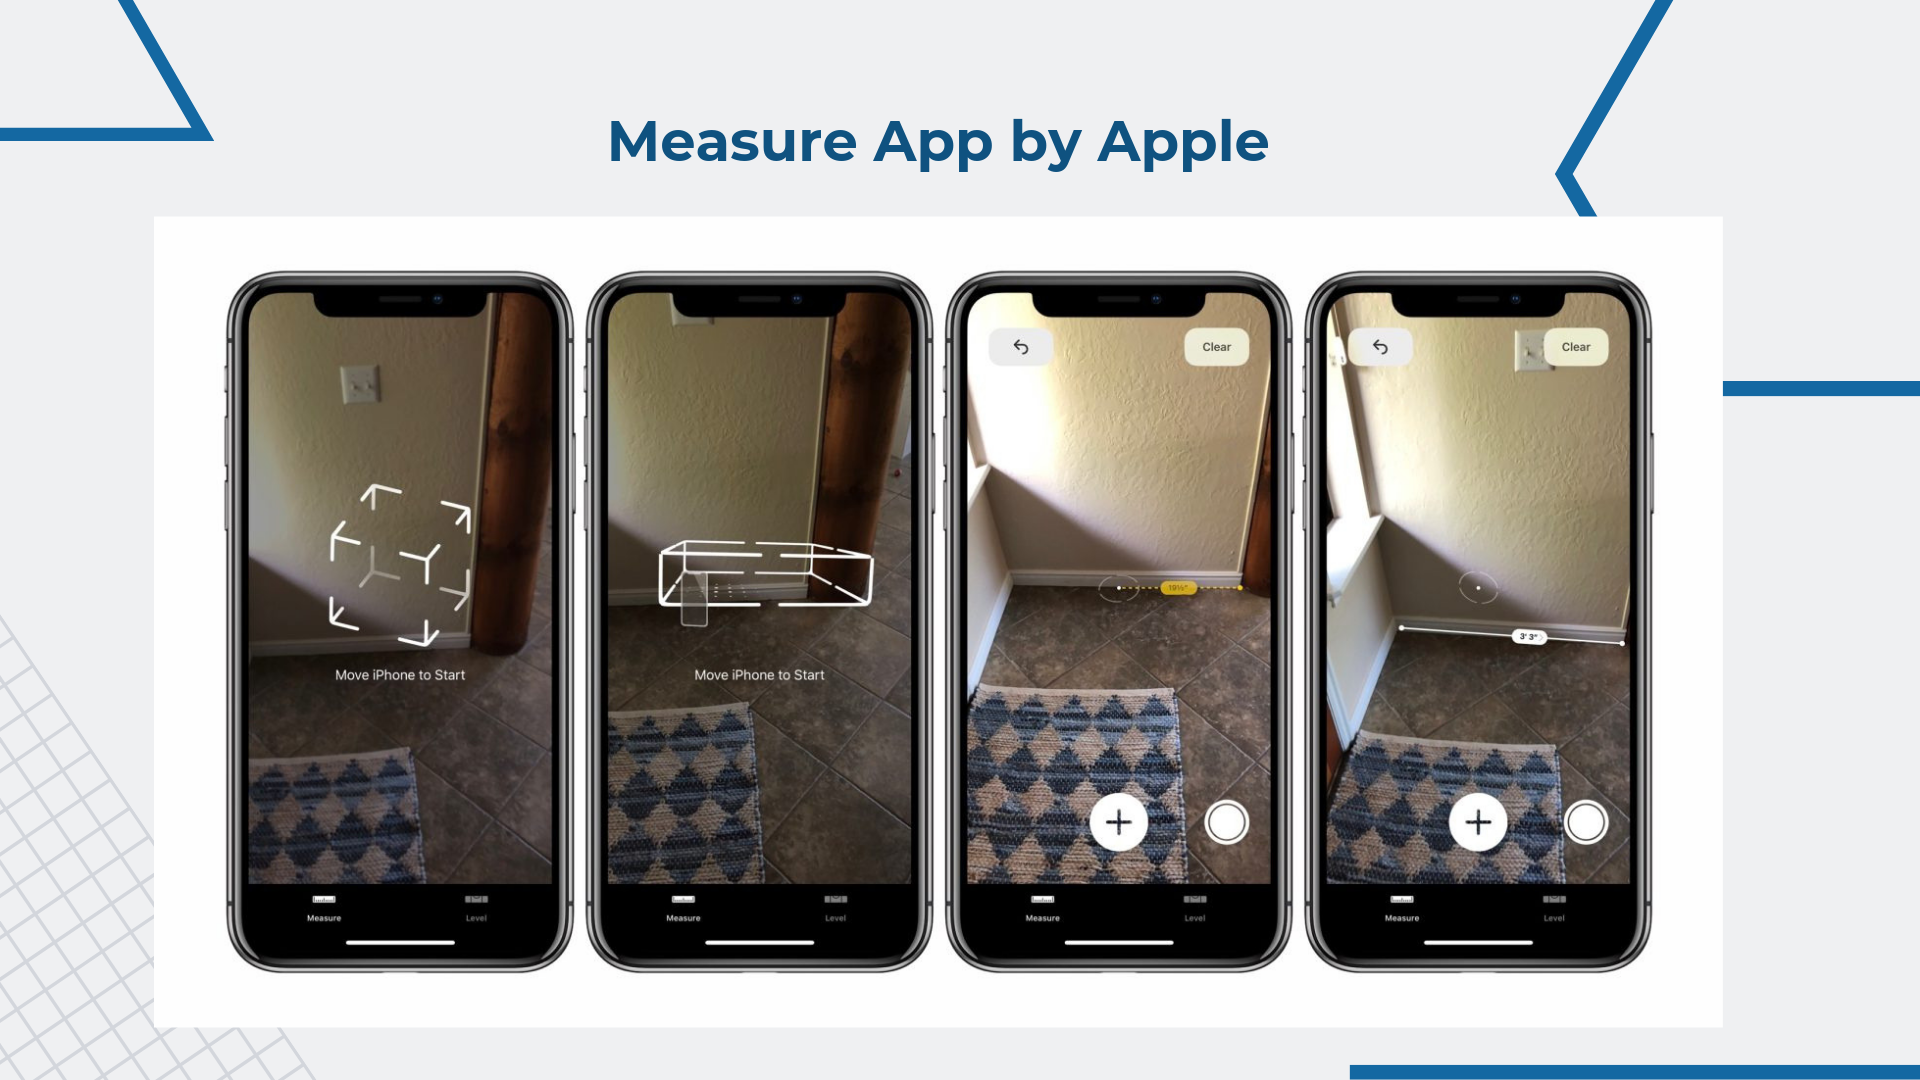 17 Free Construction Apps You Need to Download Right Now | AirMeasure App by Apple suggested by Archisnapper